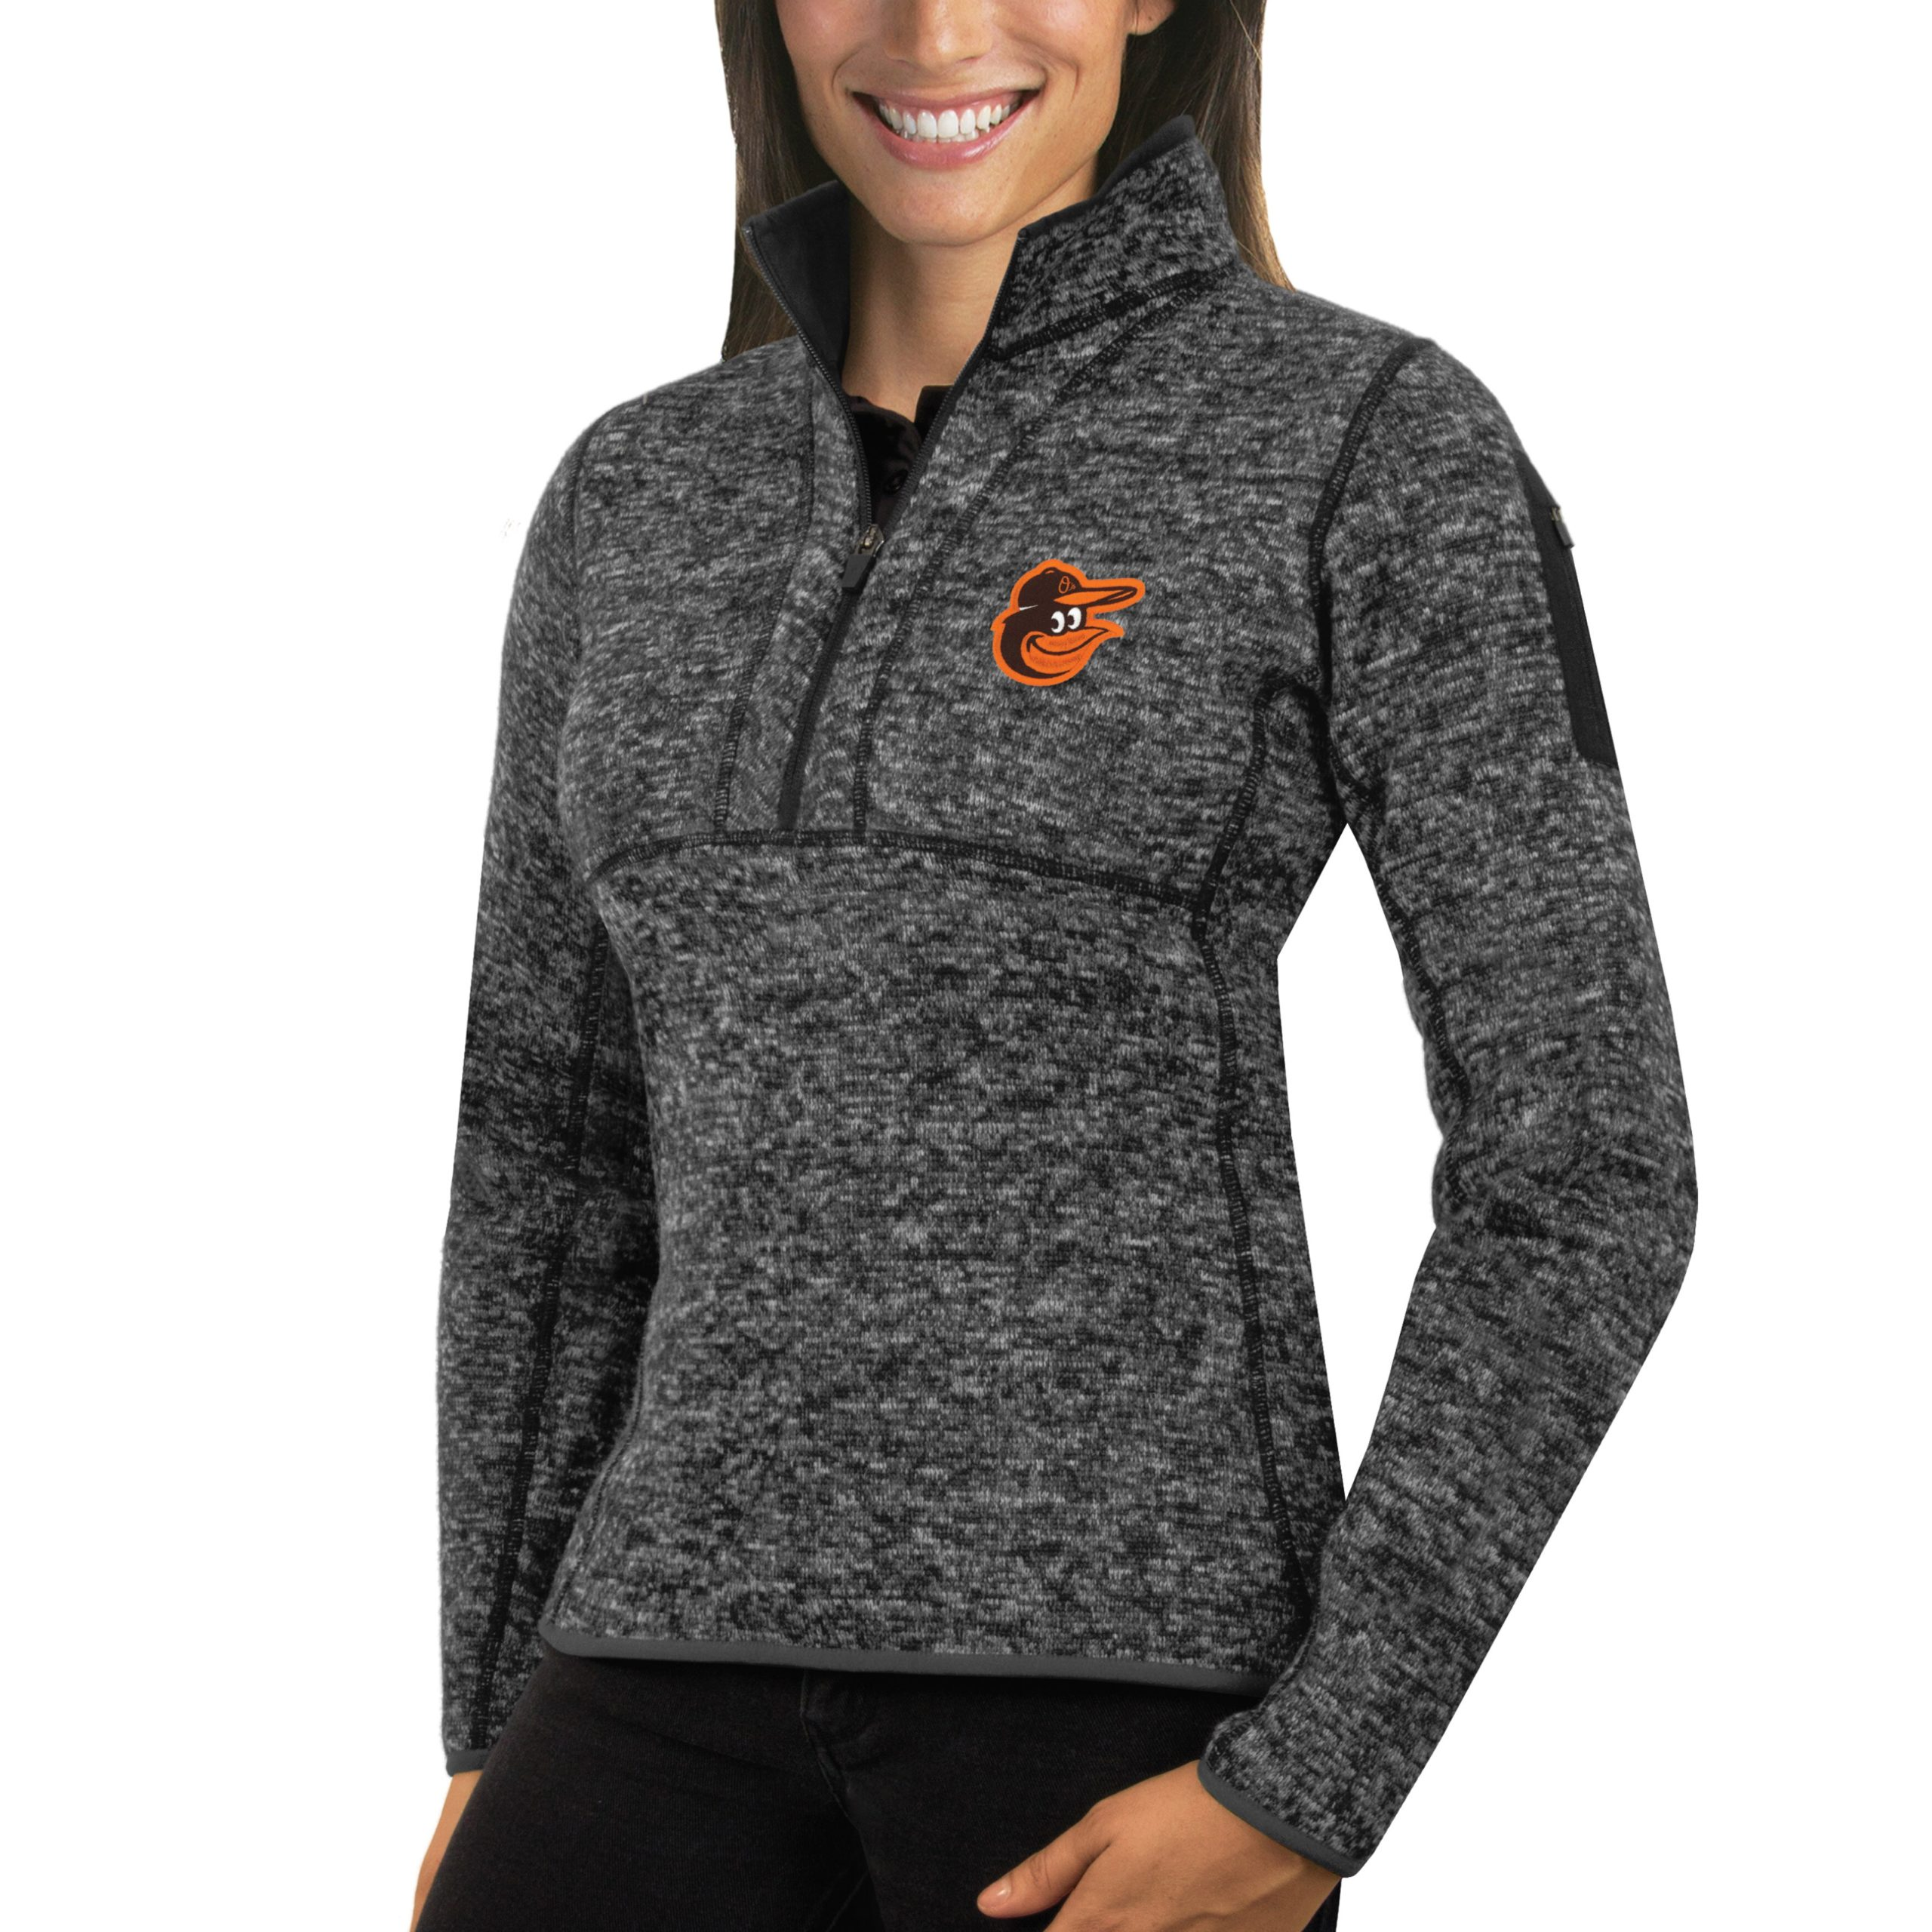 Baltimore Orioles Antigua Women's Fortune Half-Zip Pullover Sweater - Heathered Charcoal